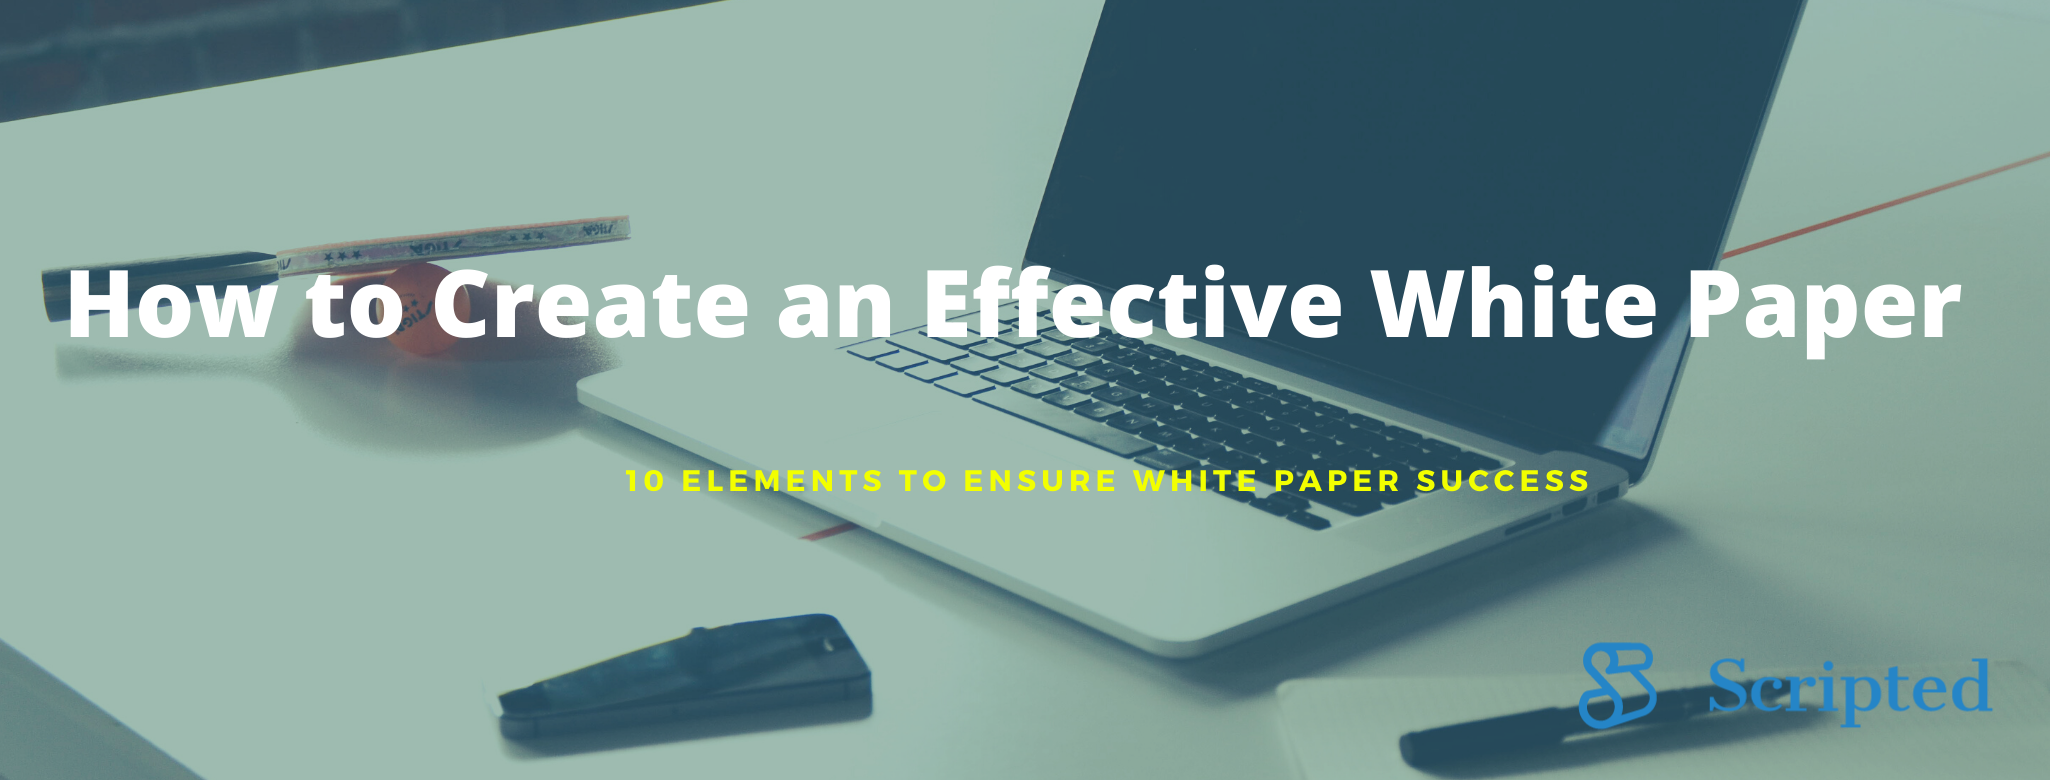 10 Things to Know About Publishing White Papers